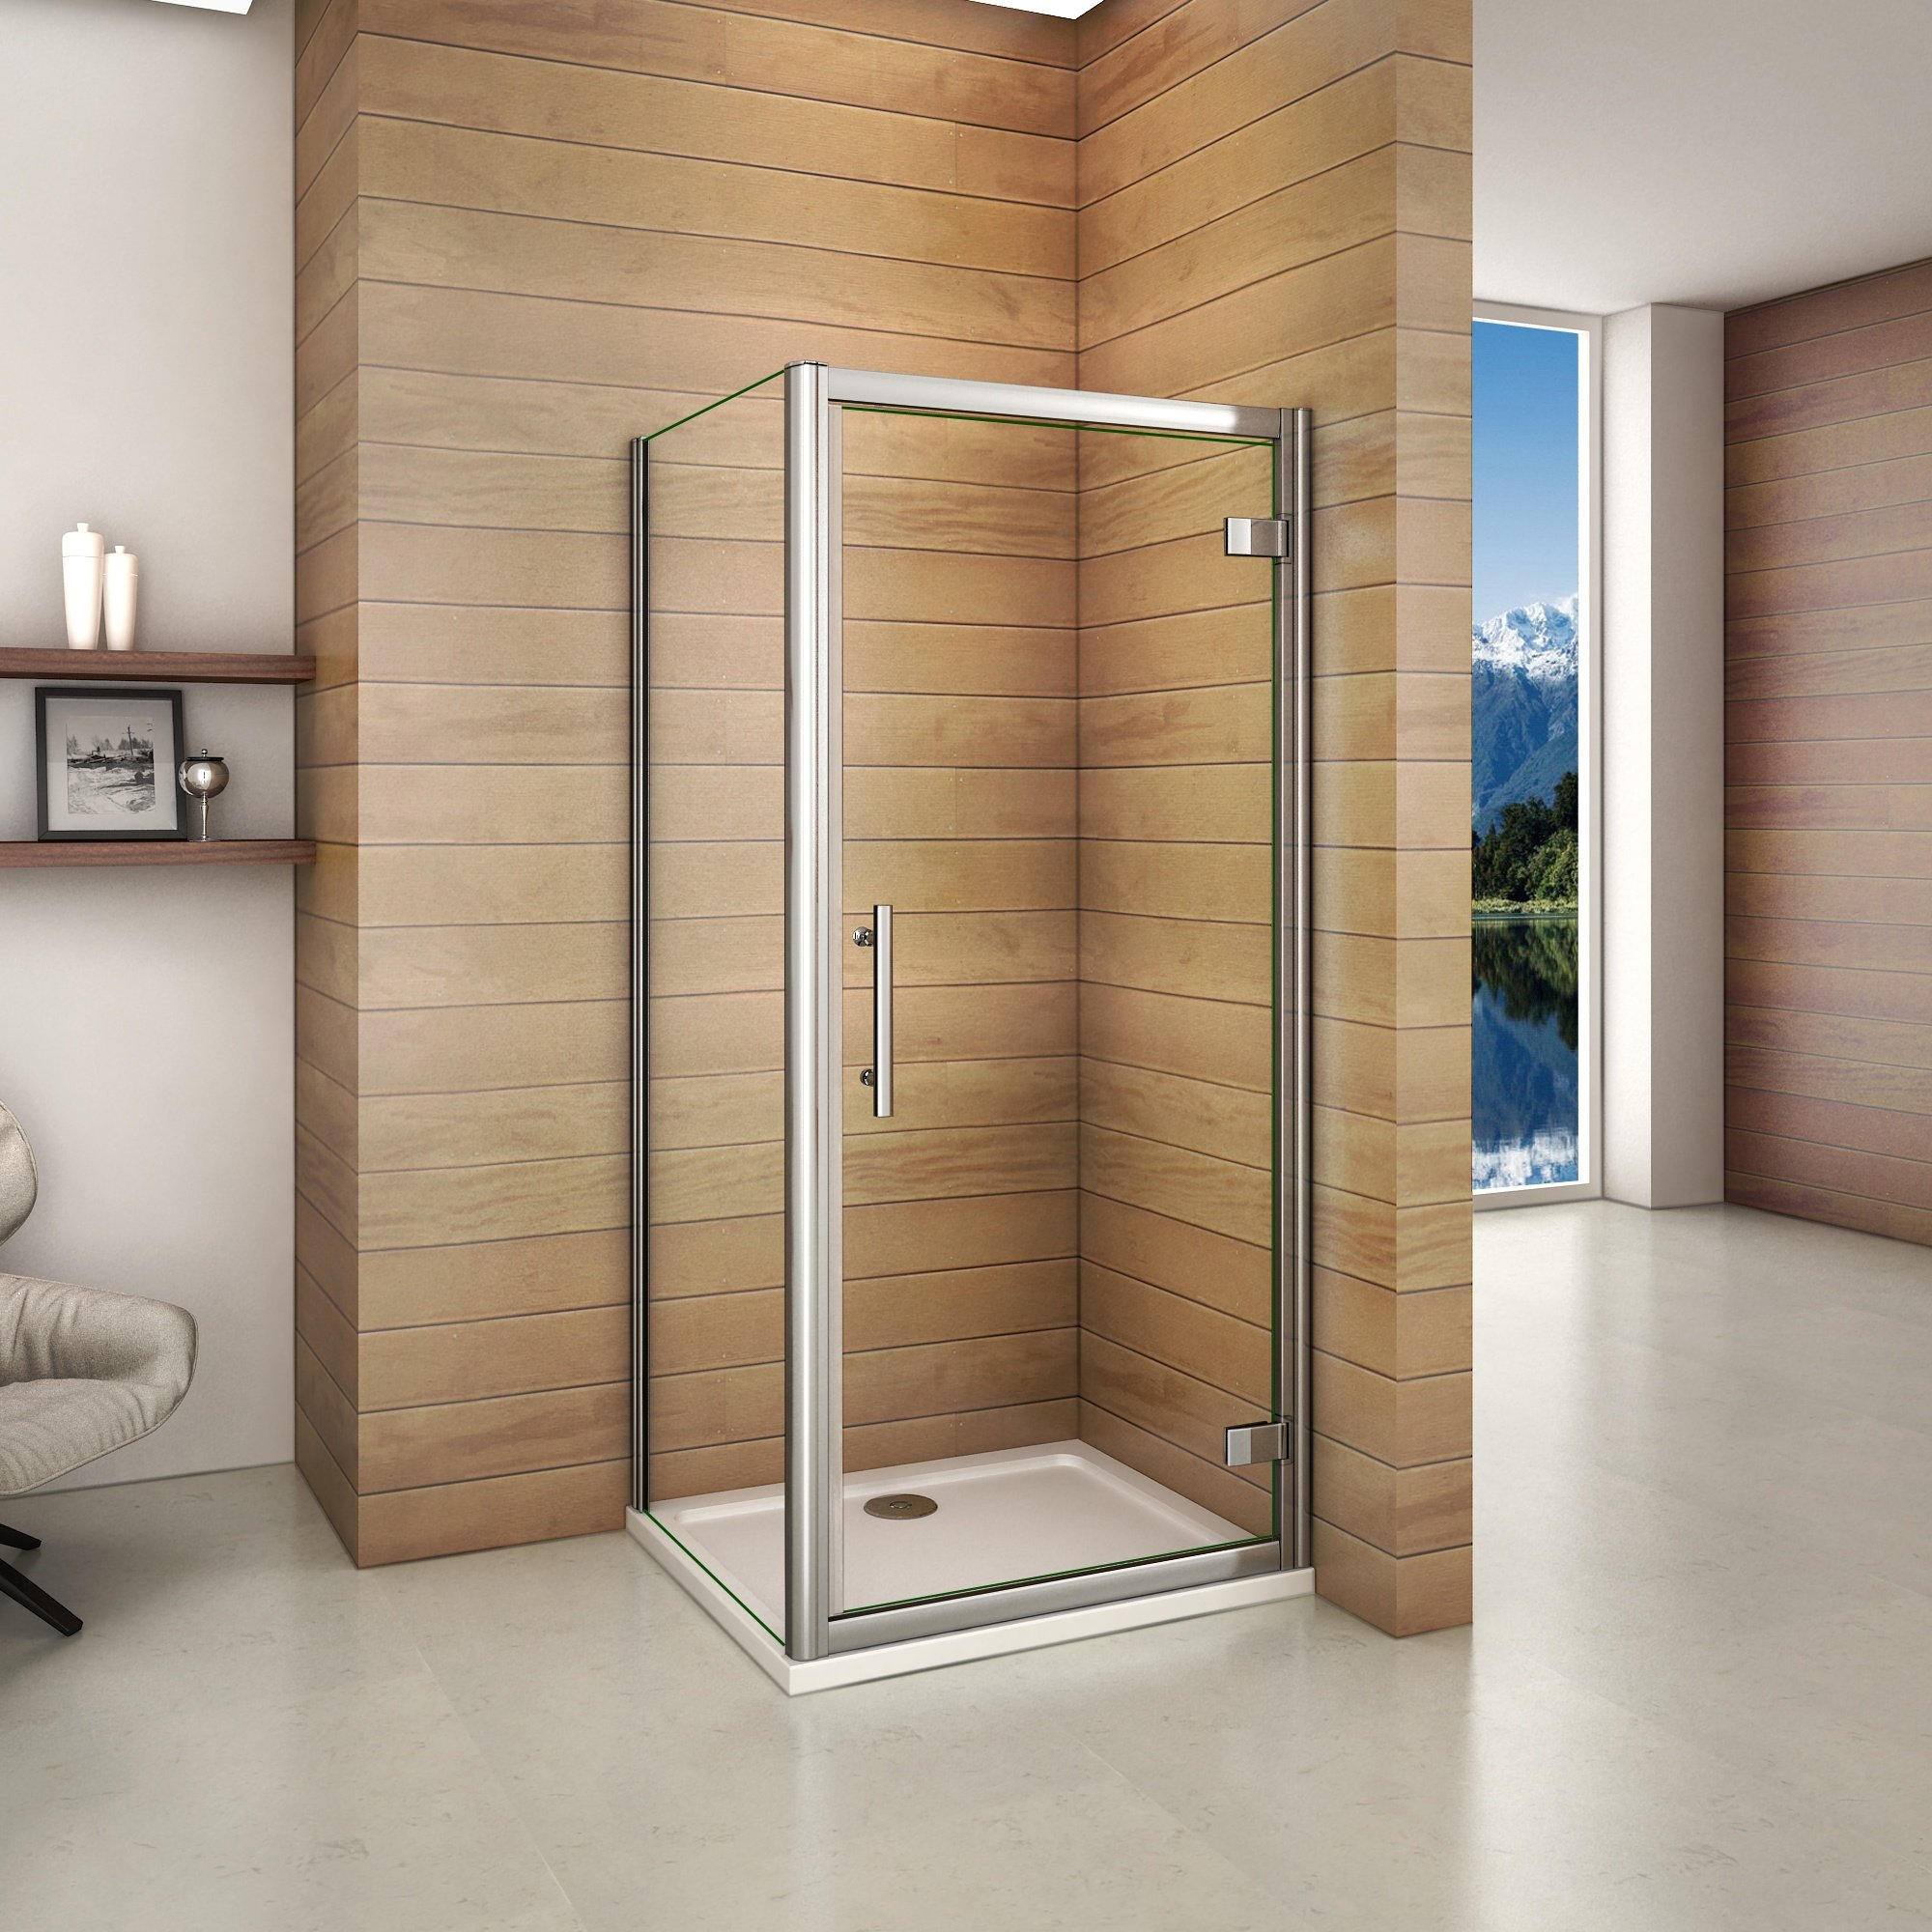 cabine de douche 185cm porte de pivotante avec une paroi de douche inspid co. Black Bedroom Furniture Sets. Home Design Ideas